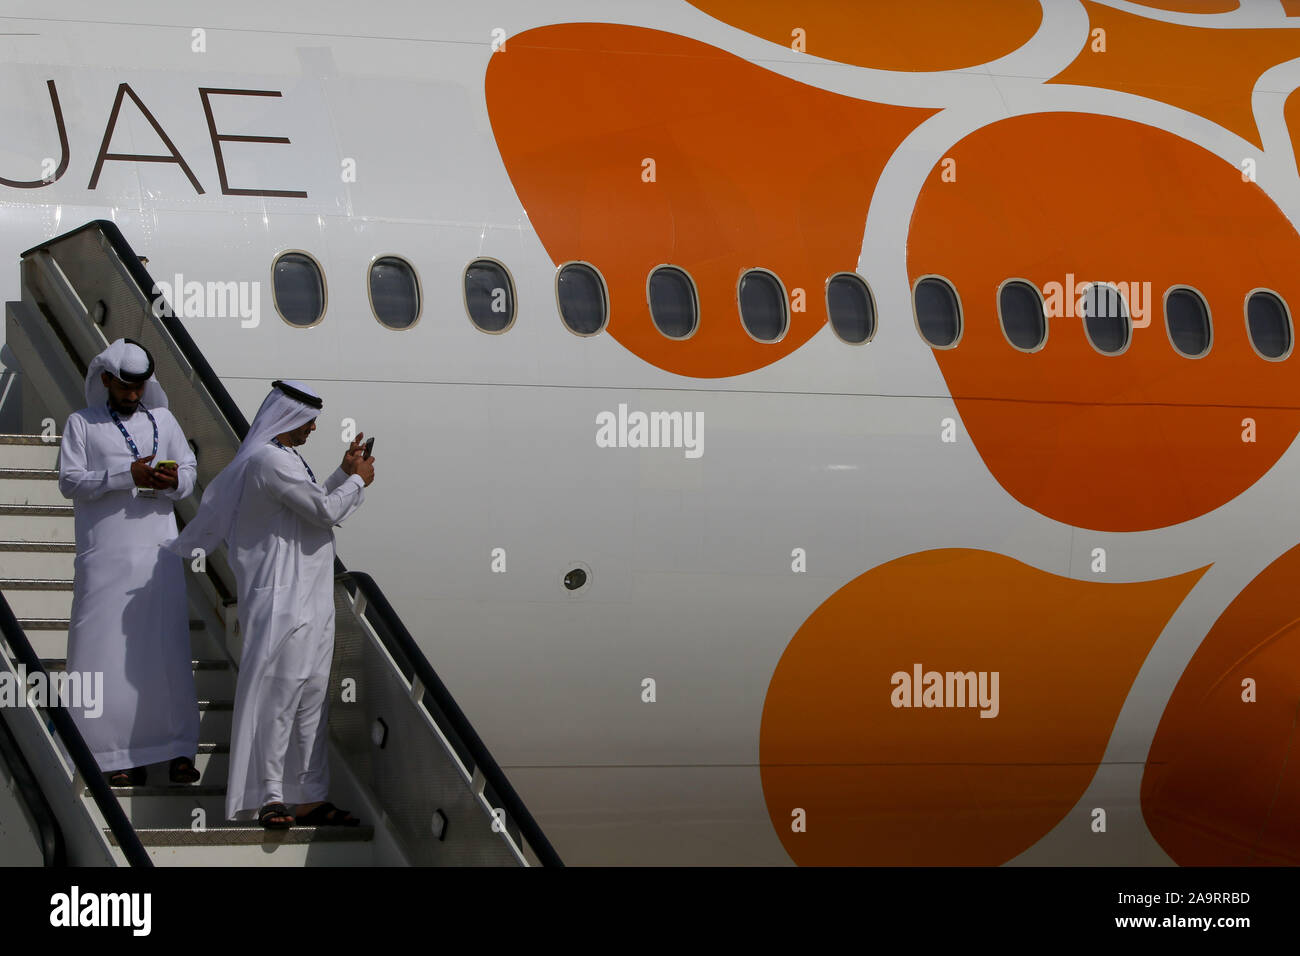 Dubai, United Arab Emirates. 17th Nov, 2019. Visitors wearing a national arabic outfits are seen during the opening day of Dubai International Airshow. Credit: Leonid Faerberg/SOPA Images/ZUMA Wire/Alamy Live News Stock Photo